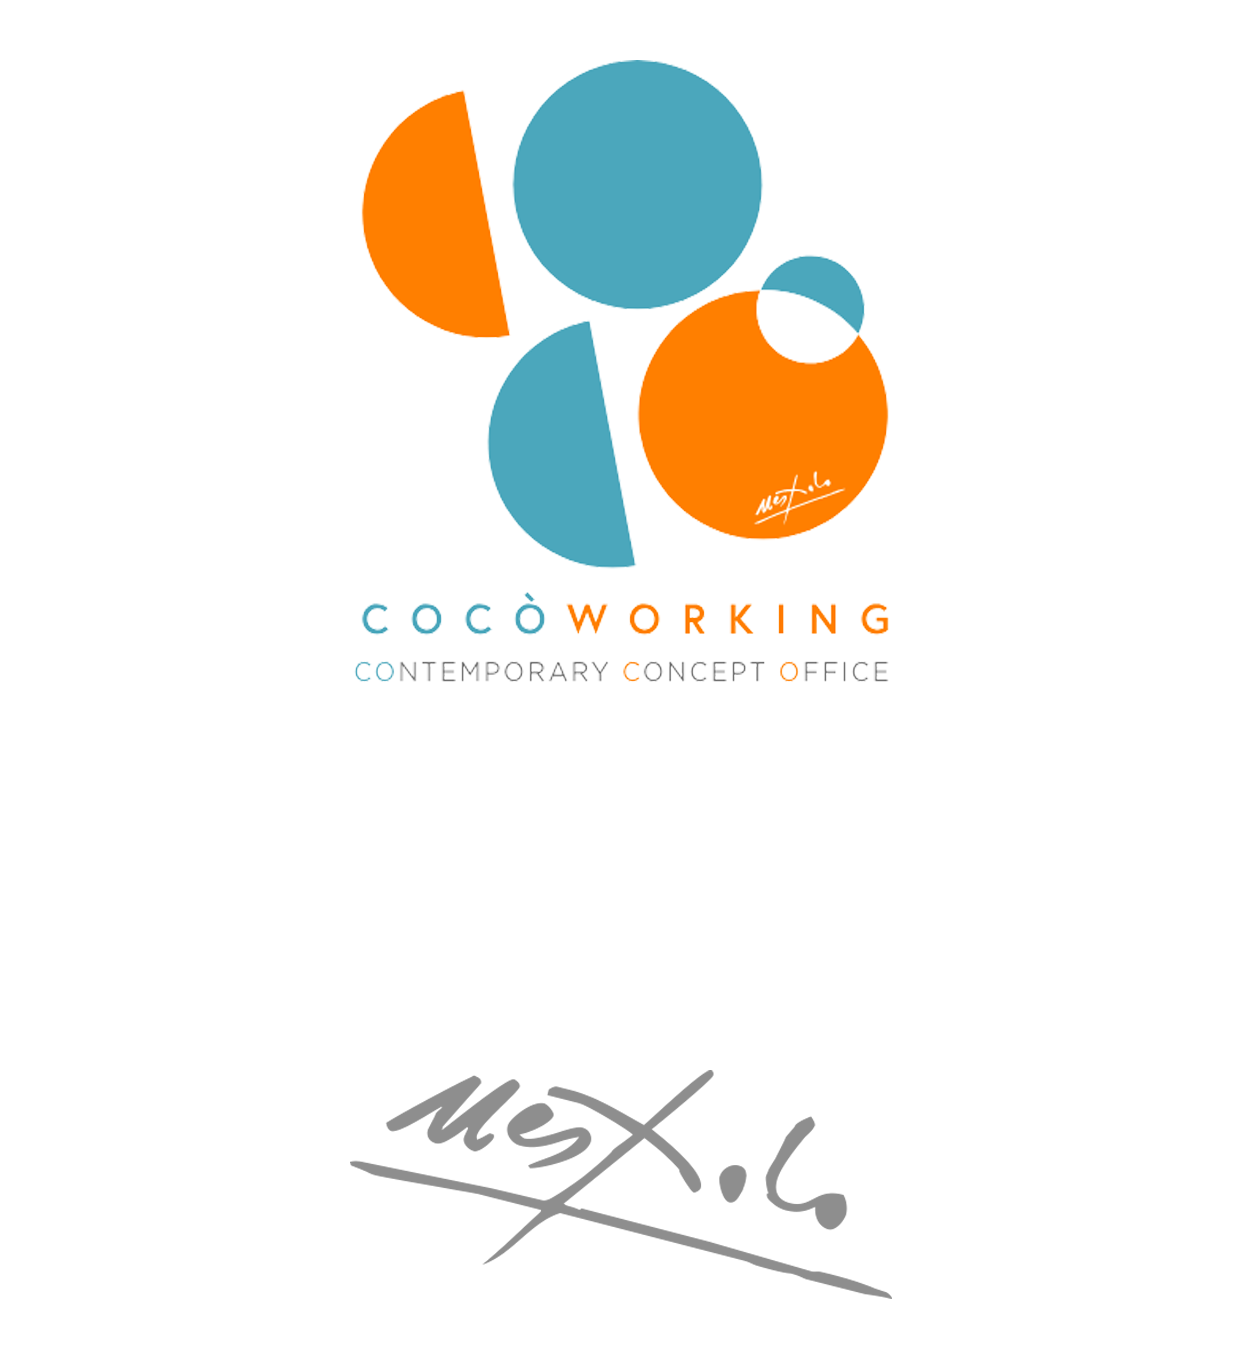 Logo coco working